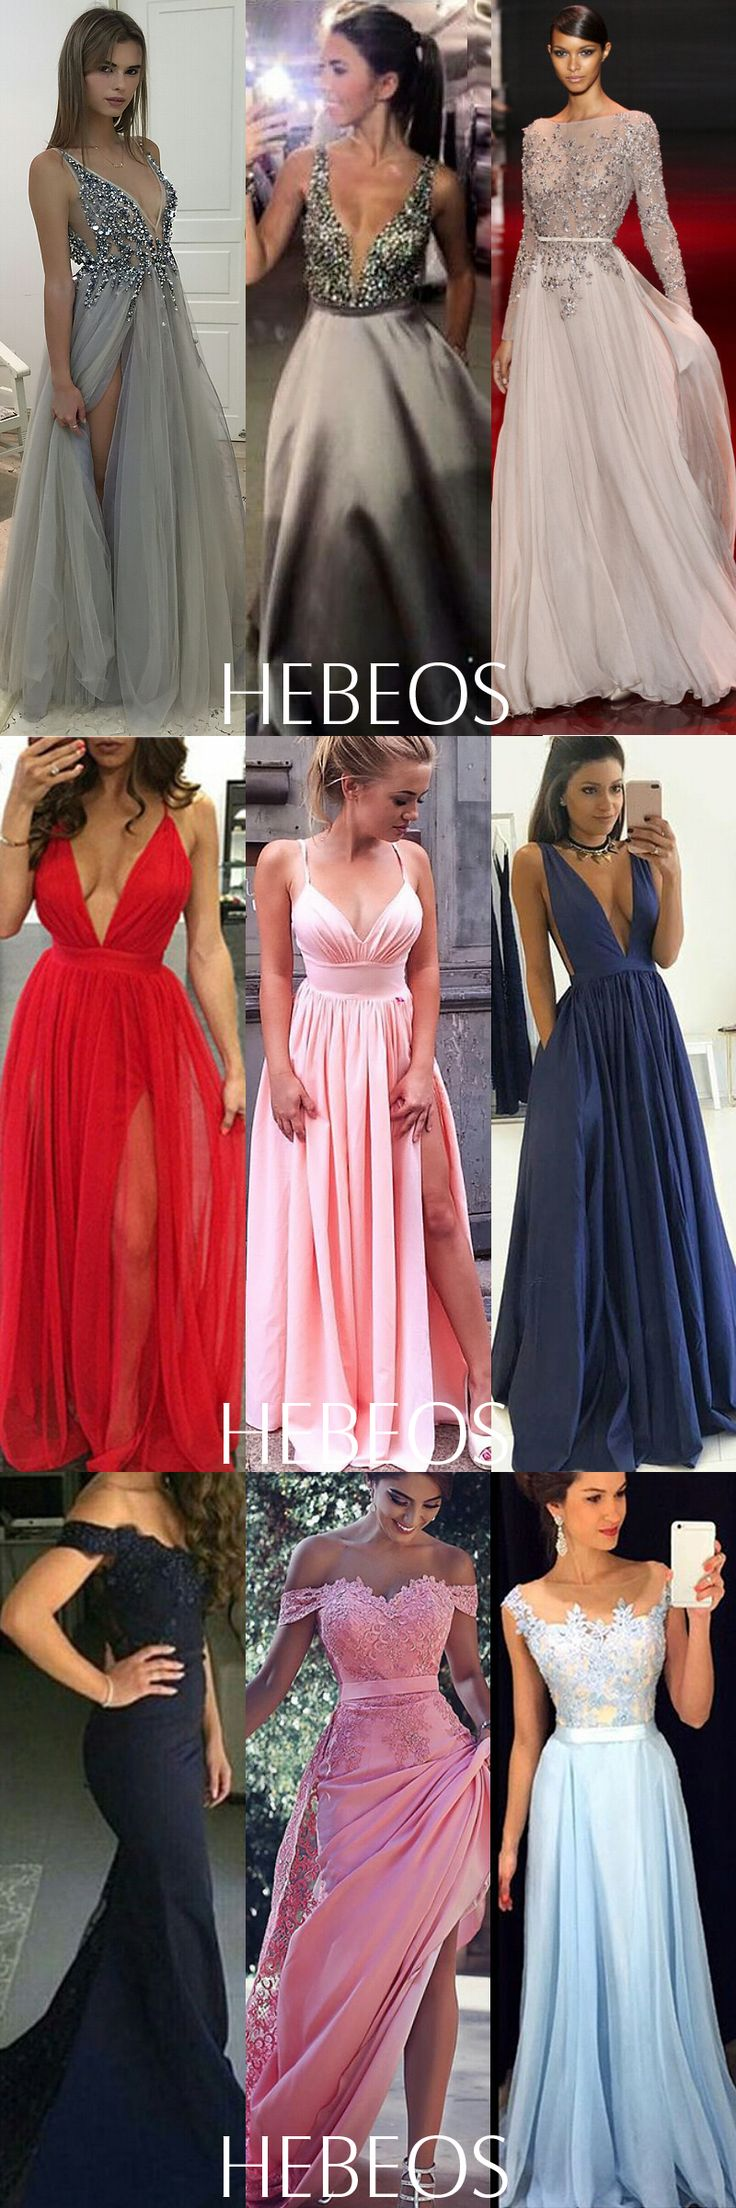 The new HEBEOS prom collection is here! Shop dresses $99 & up in sizes 0–22 & 28 colors. Custom size for free! Shop prom dresses 2018 now! More Evening gowns & Formal dress at hebeos.com